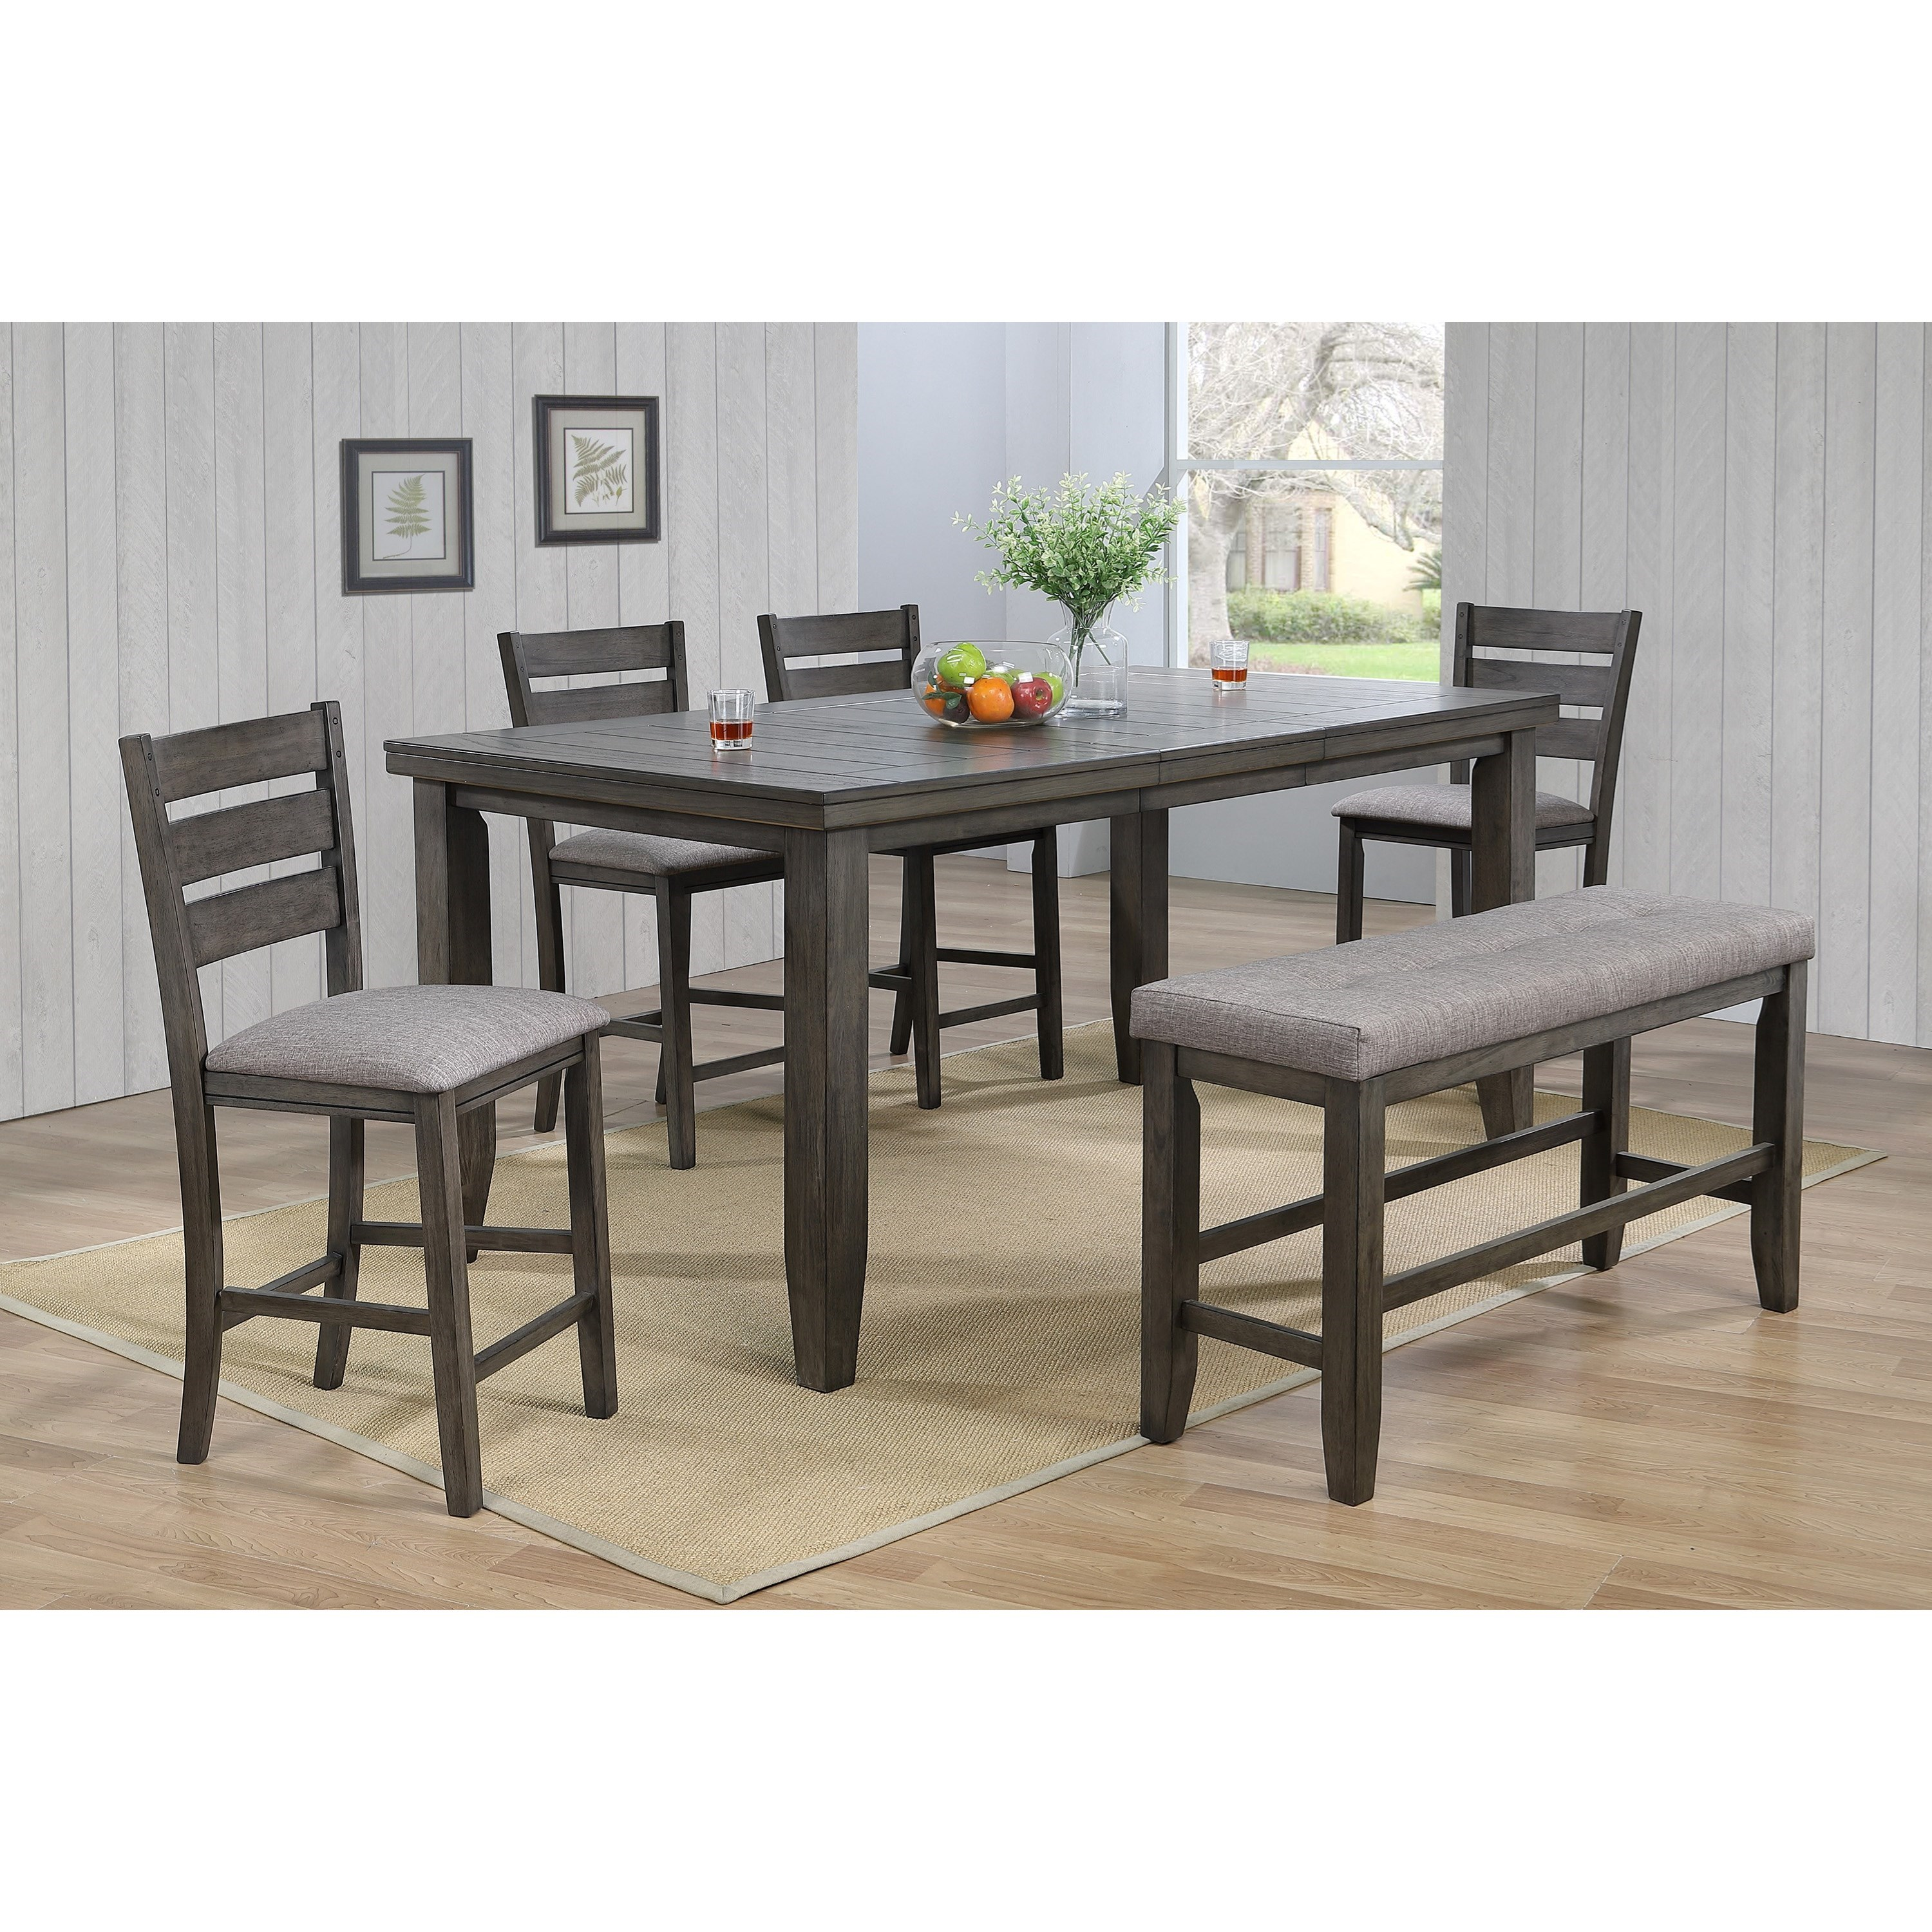 Bardstown Pub Table Set with Bench by Crown Mark at Northeast Factory Direct